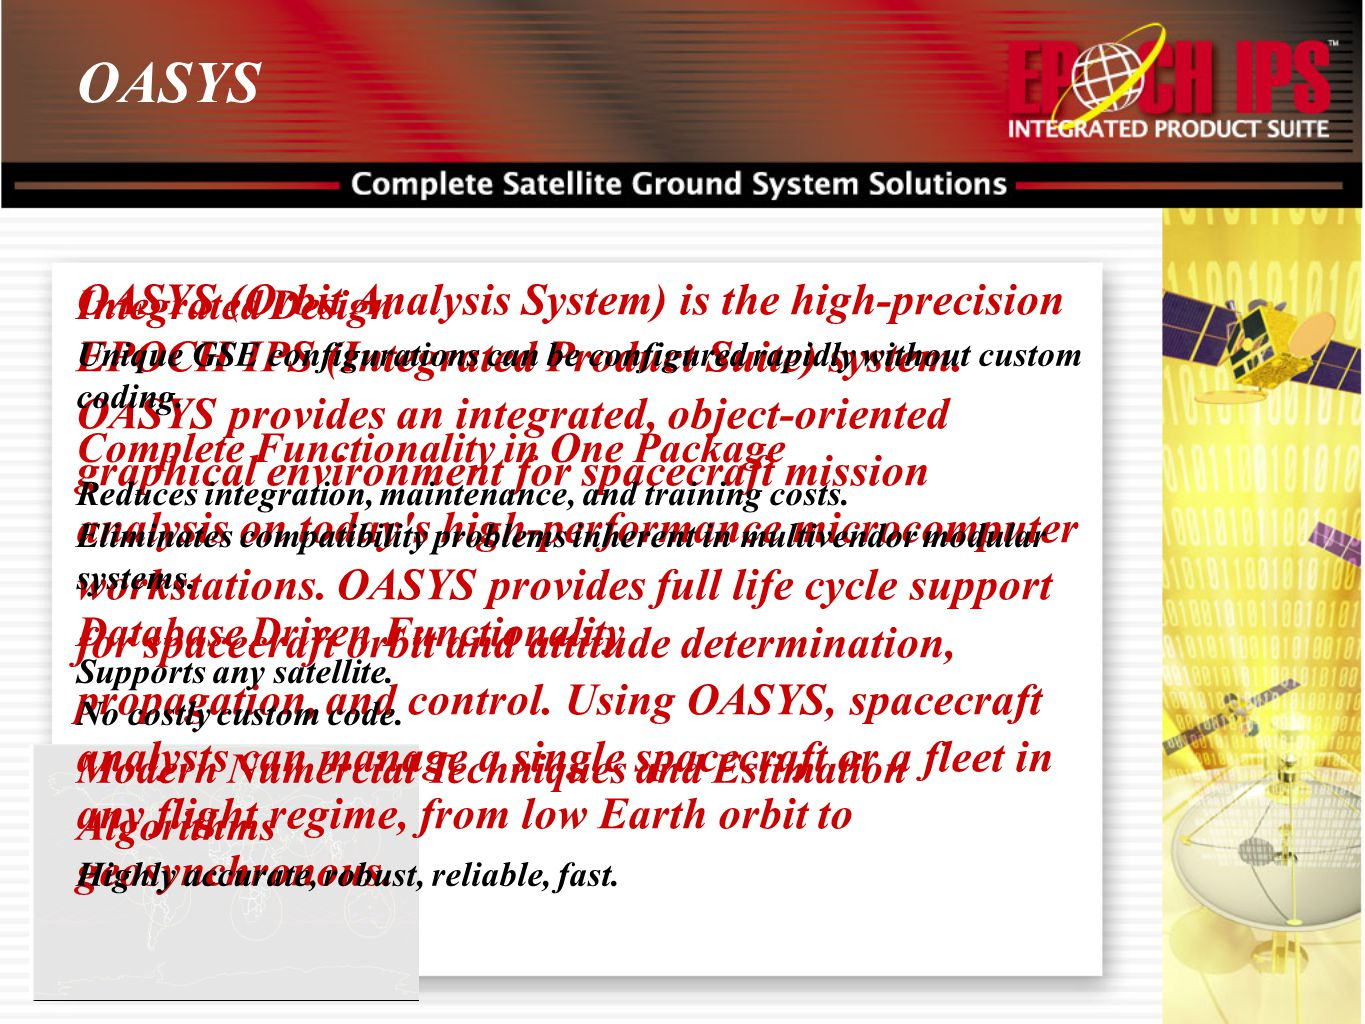 OASYS OASYS (Orbit Analysis System) is the high-precision EPOCH IPS (Integrated Product Suite) system. OASYS provides an integrated, object-oriented g